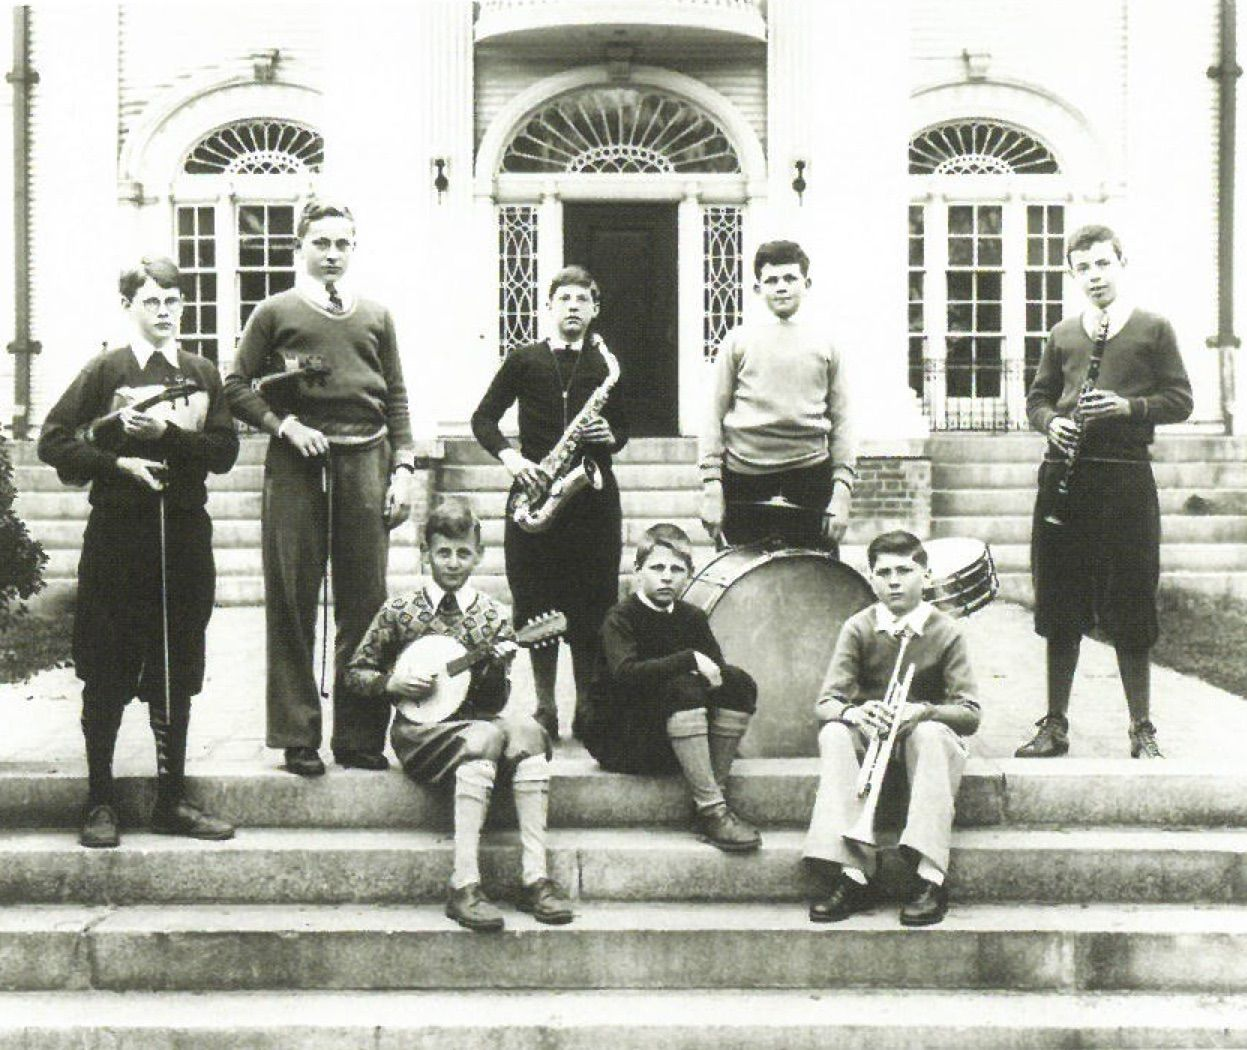 Shore students, late 1930s